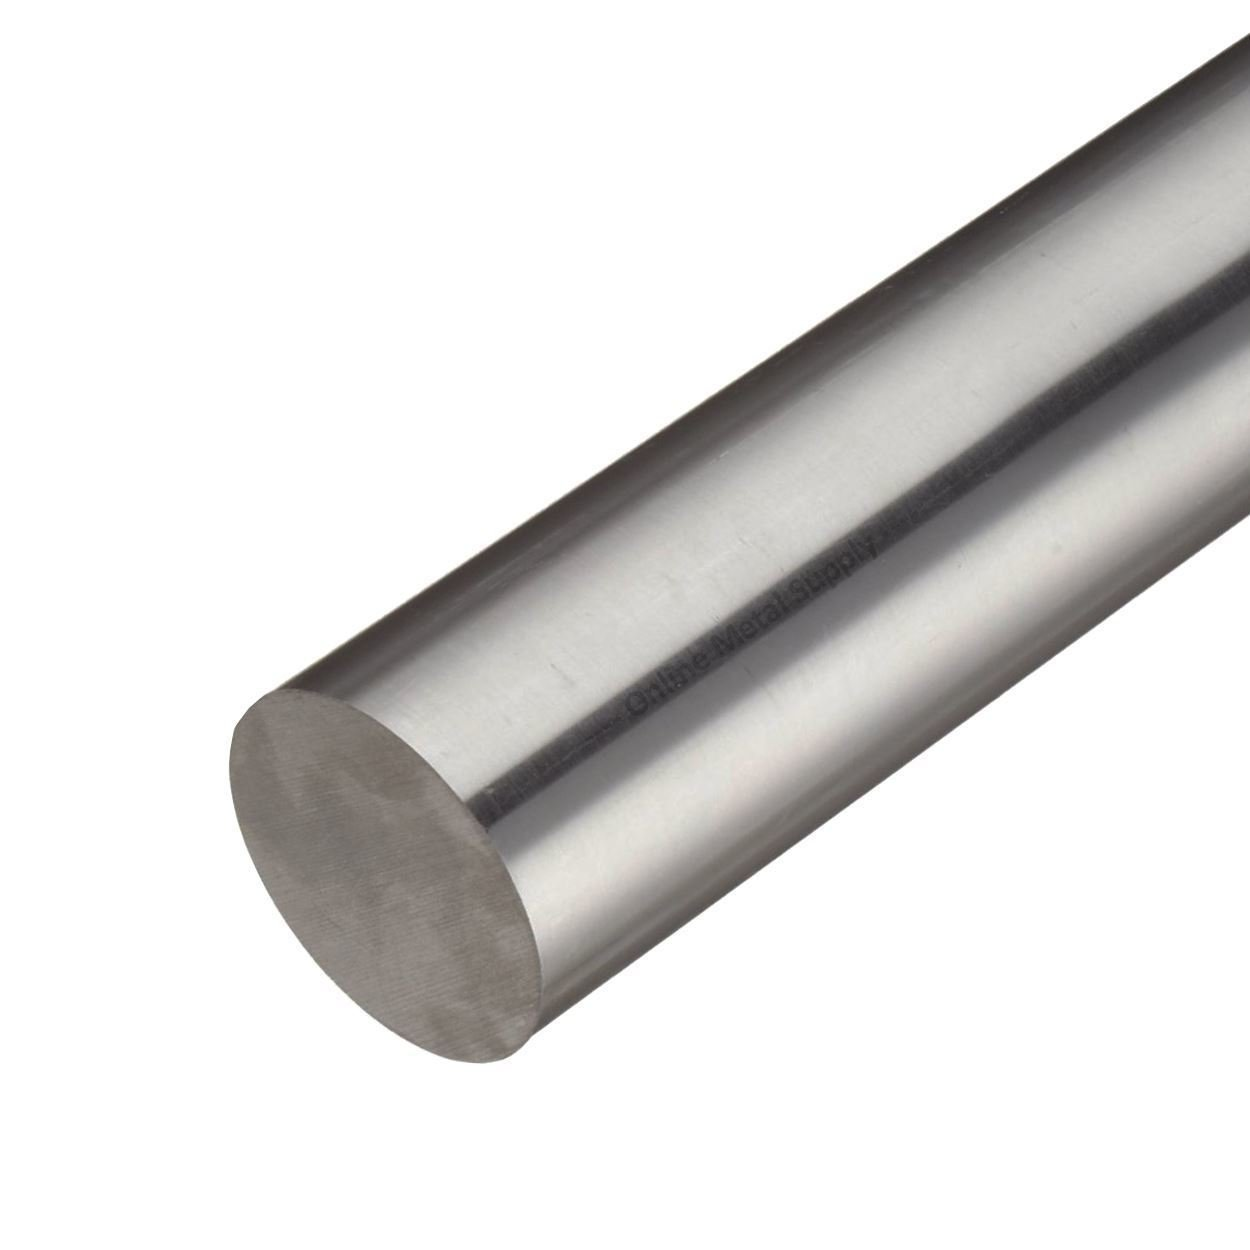 Online Metal Supply Alloy C276 Nickel Round Rod, 0.750 (3/4 inch) x 72 inches by Online Metal Supply